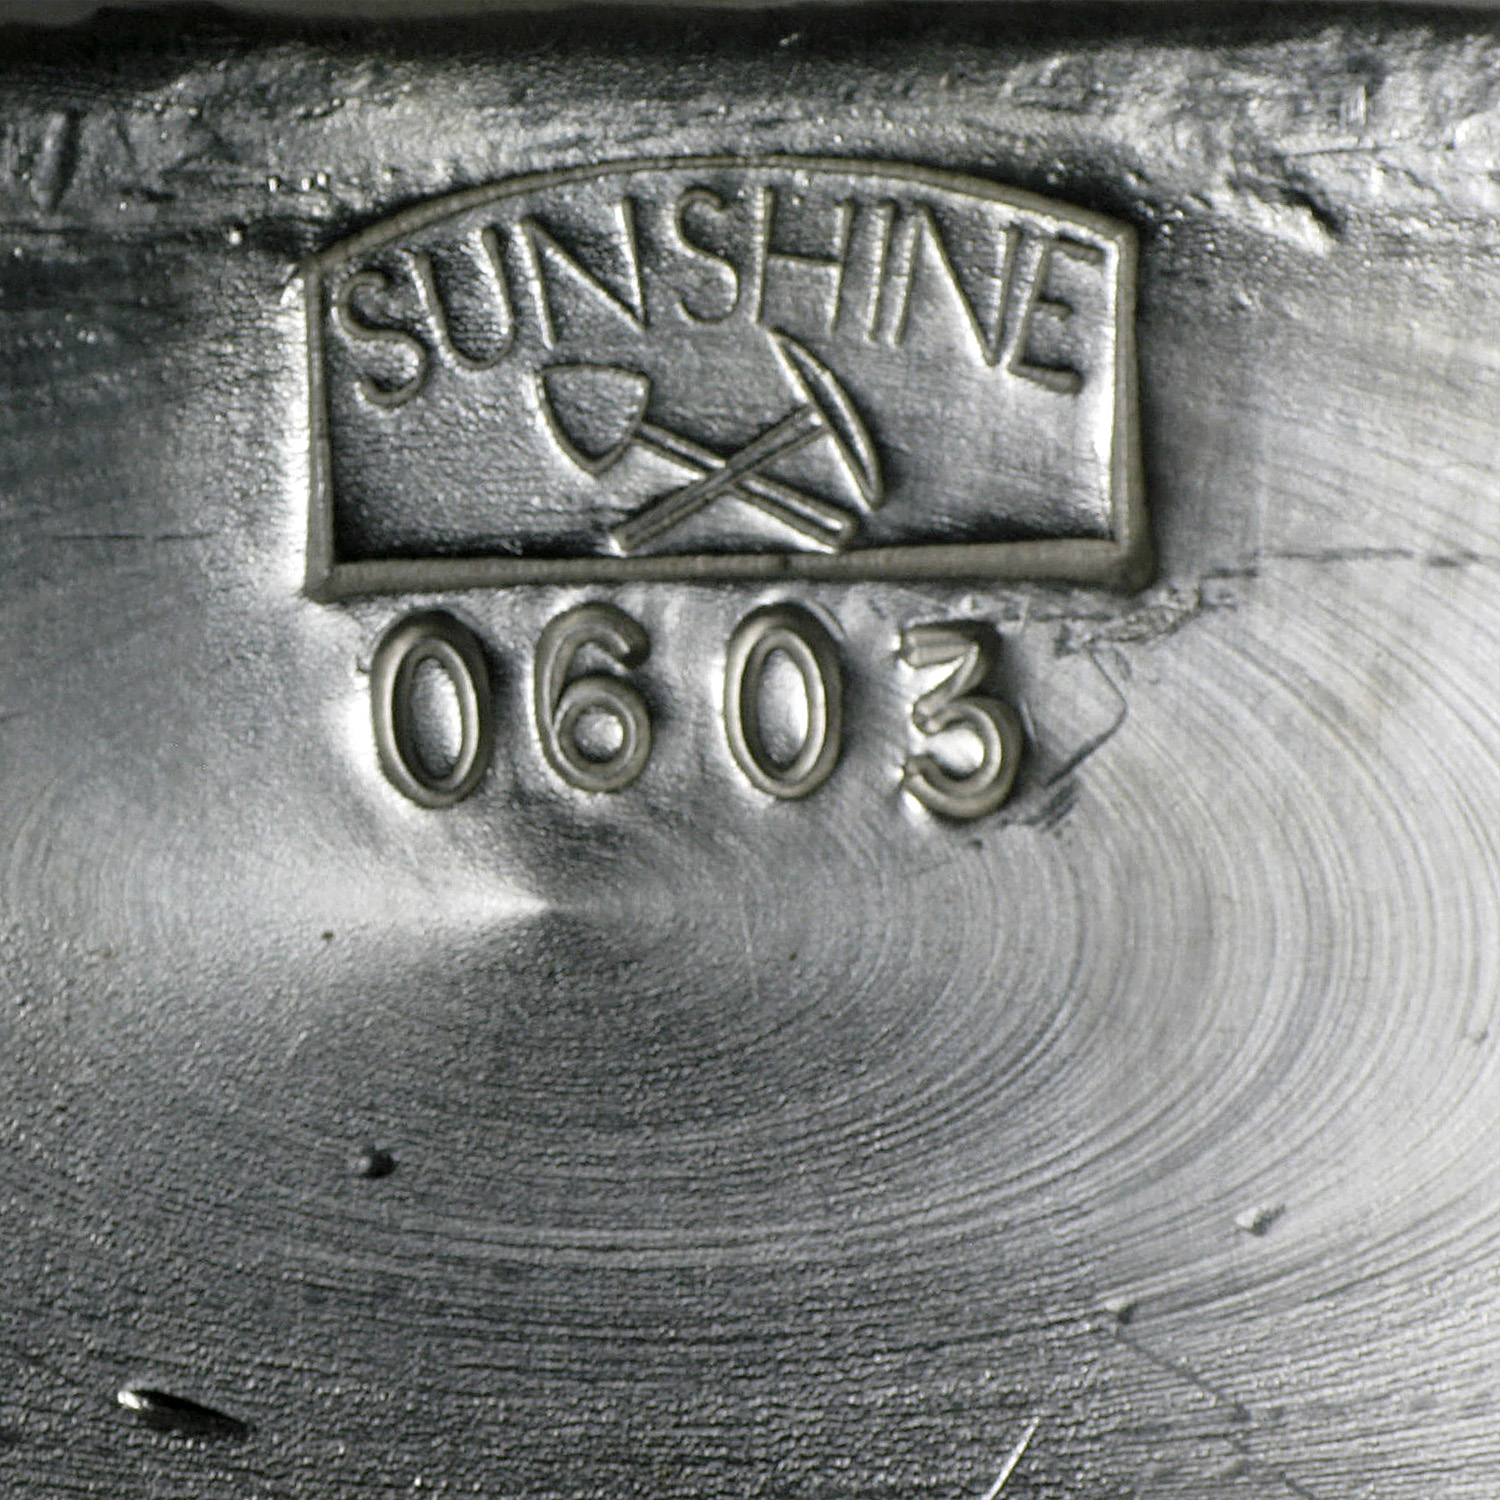 100 oz Silver Bars - Sunshine (1984/Vintage/Poured)